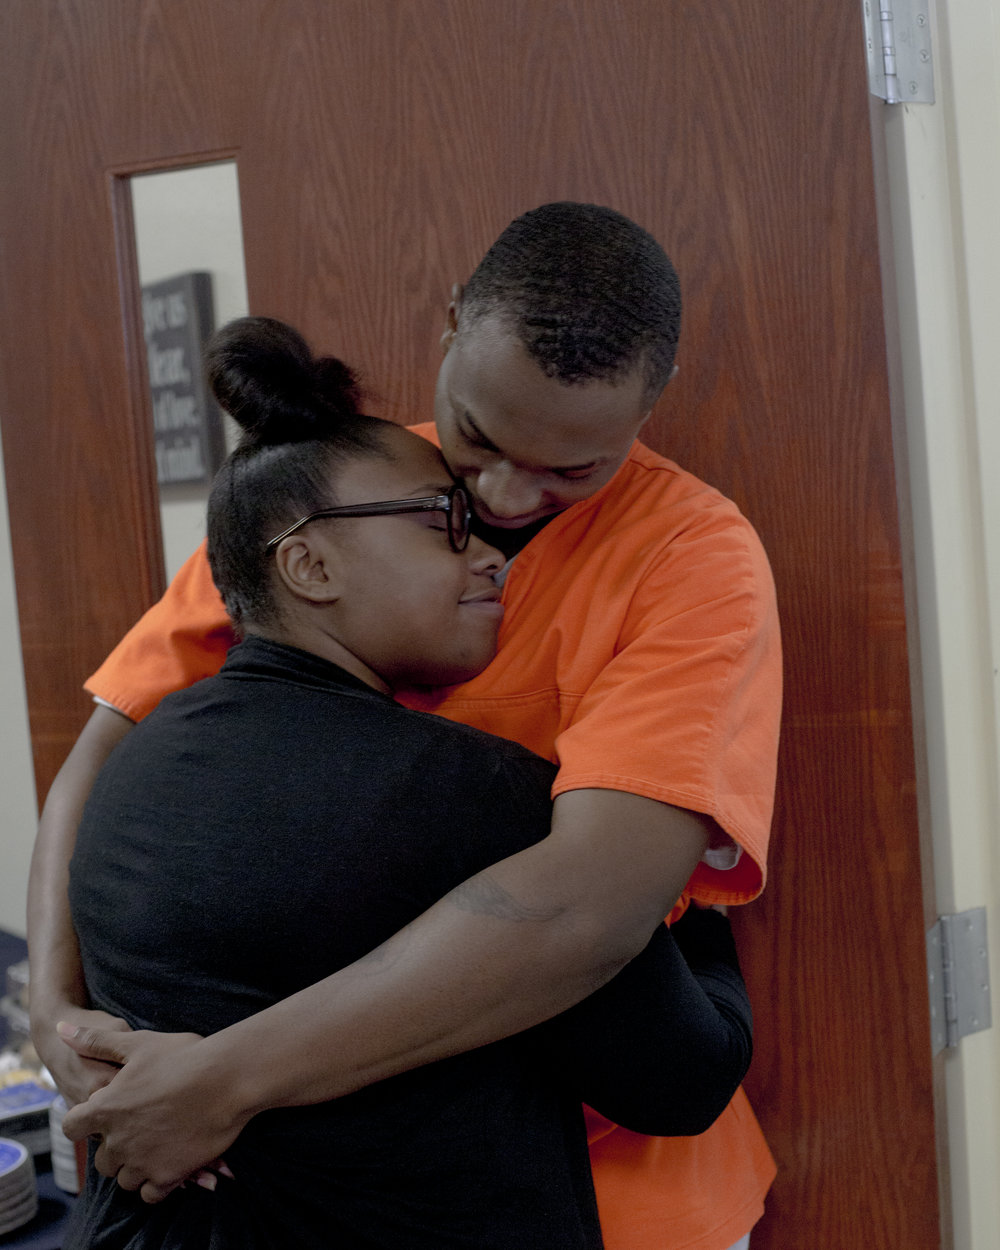 Bianca Hunter and Adesio Barnes embrace at Dick Conners Correctional Center in Hominy, Oklahoma after Barnes graduated with an associates degree. The two are dating after knowing each other for more than 10 years.